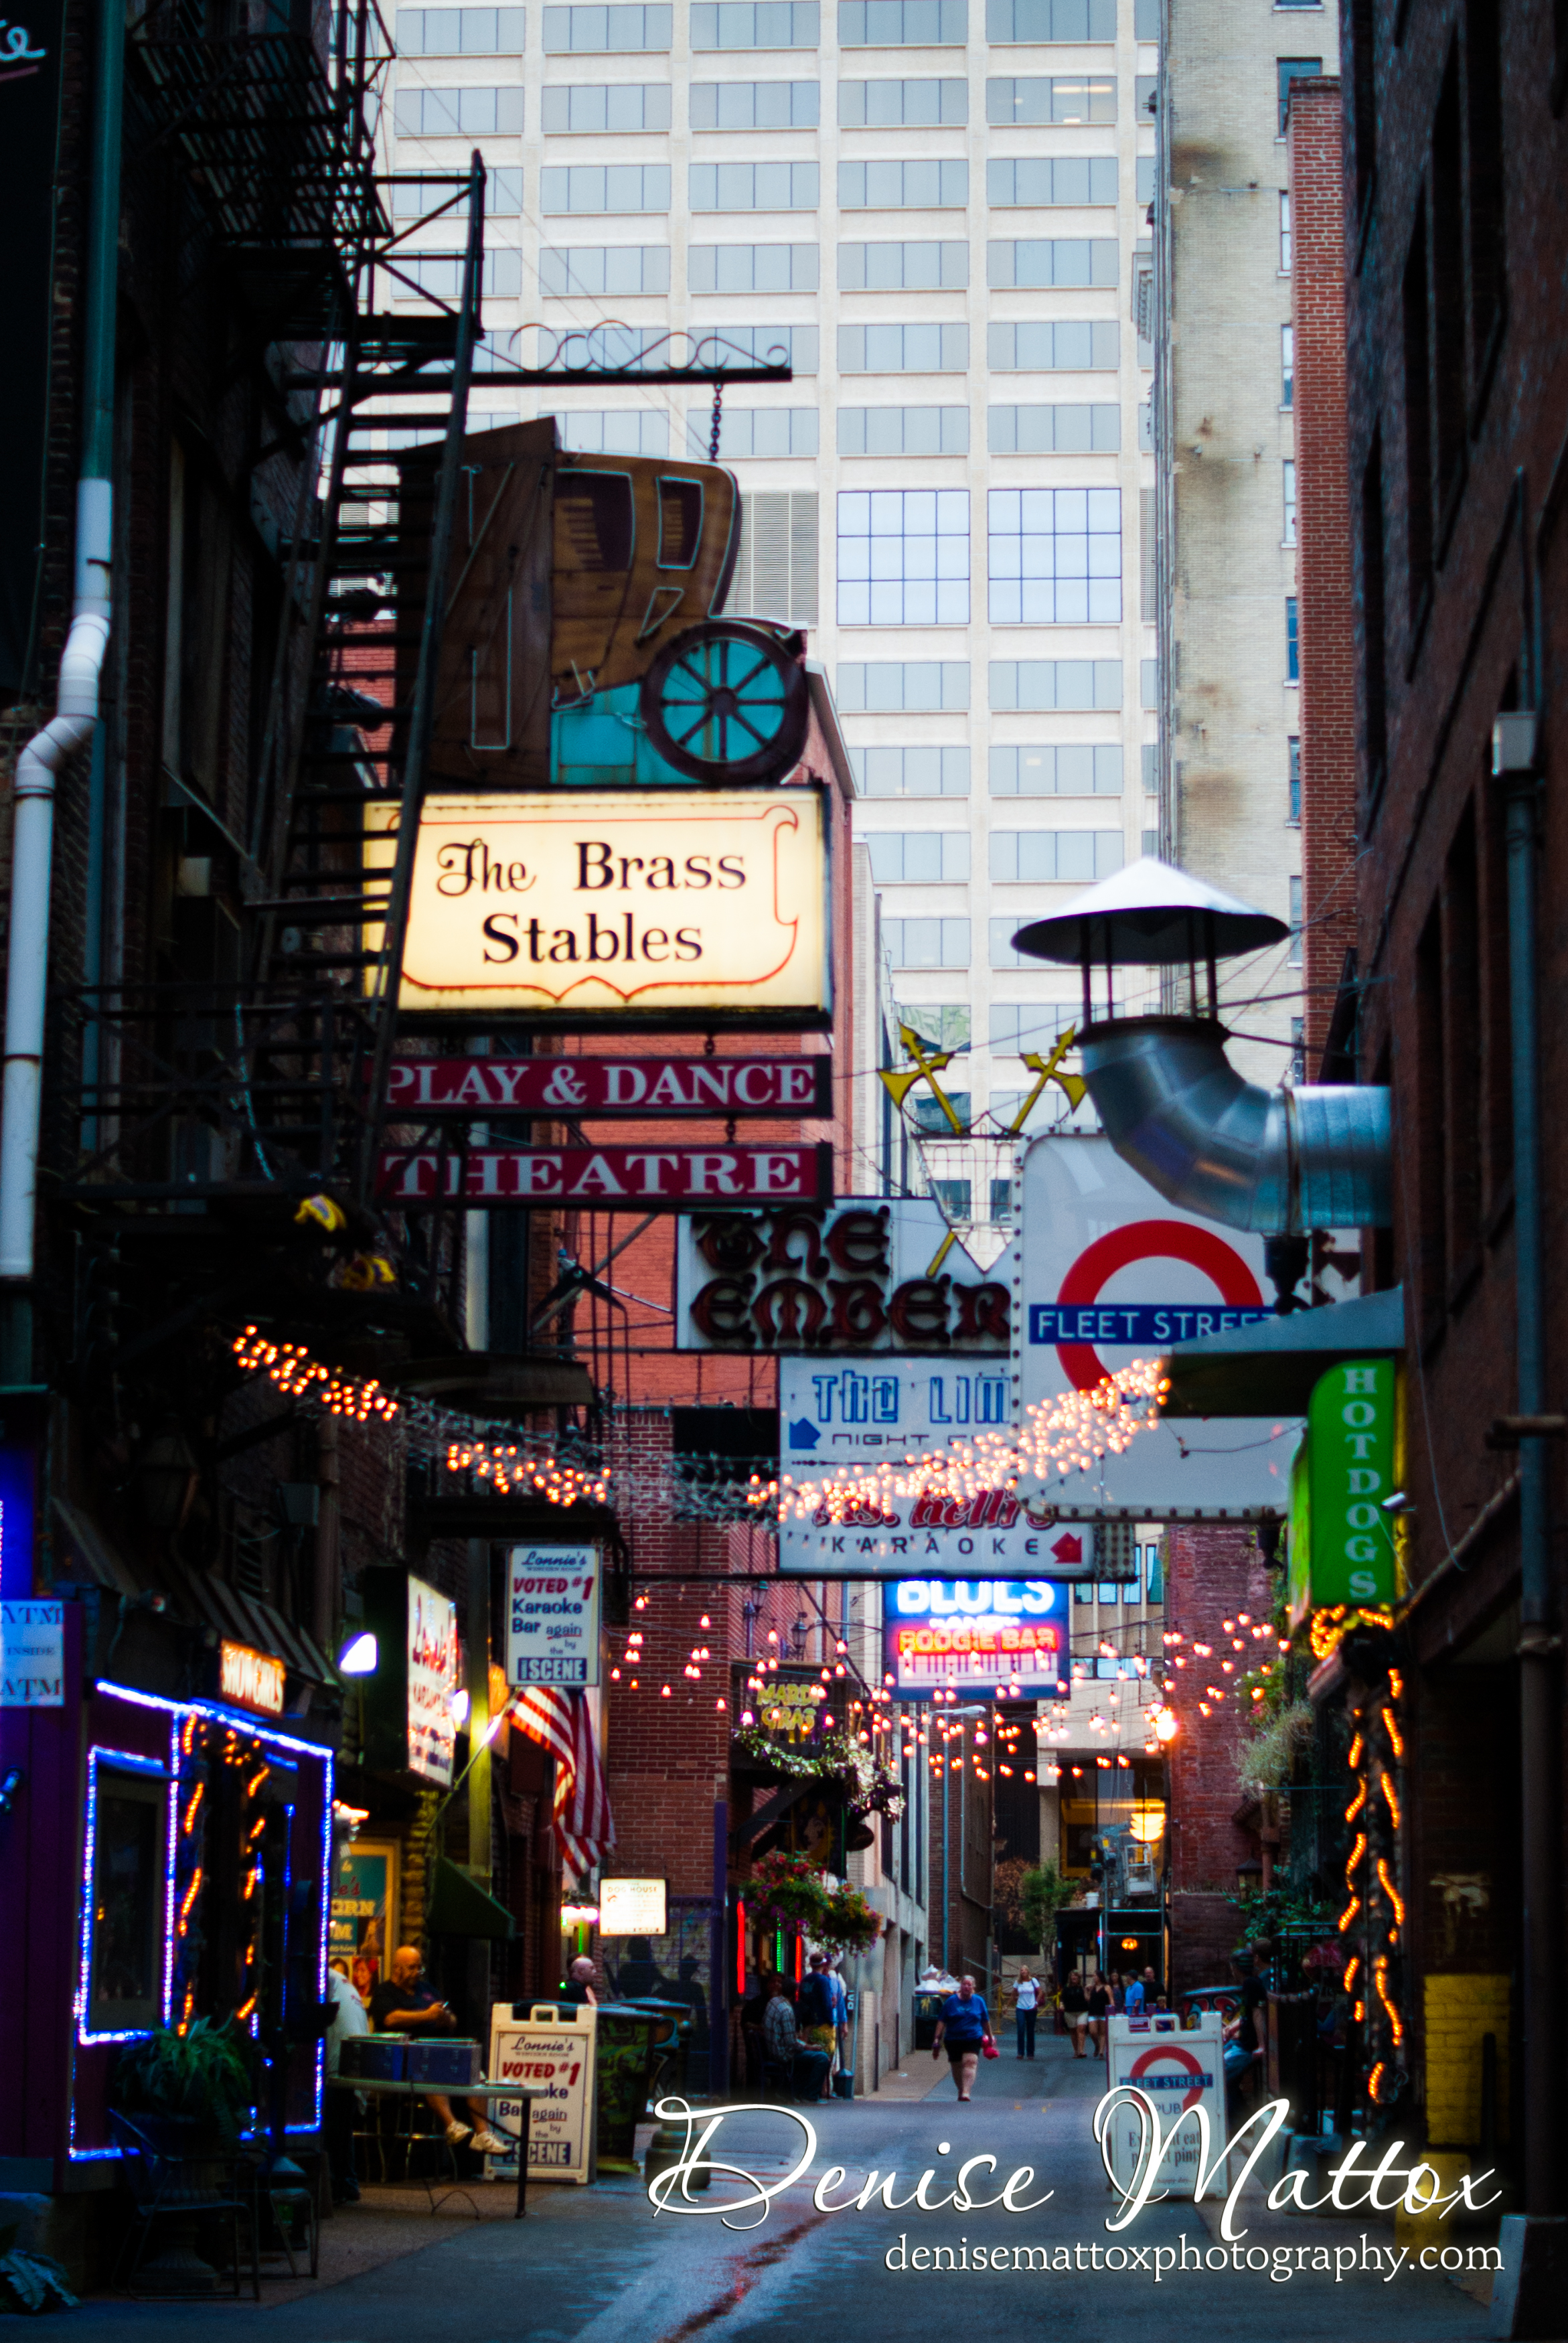 Printer's Alley - July 2014